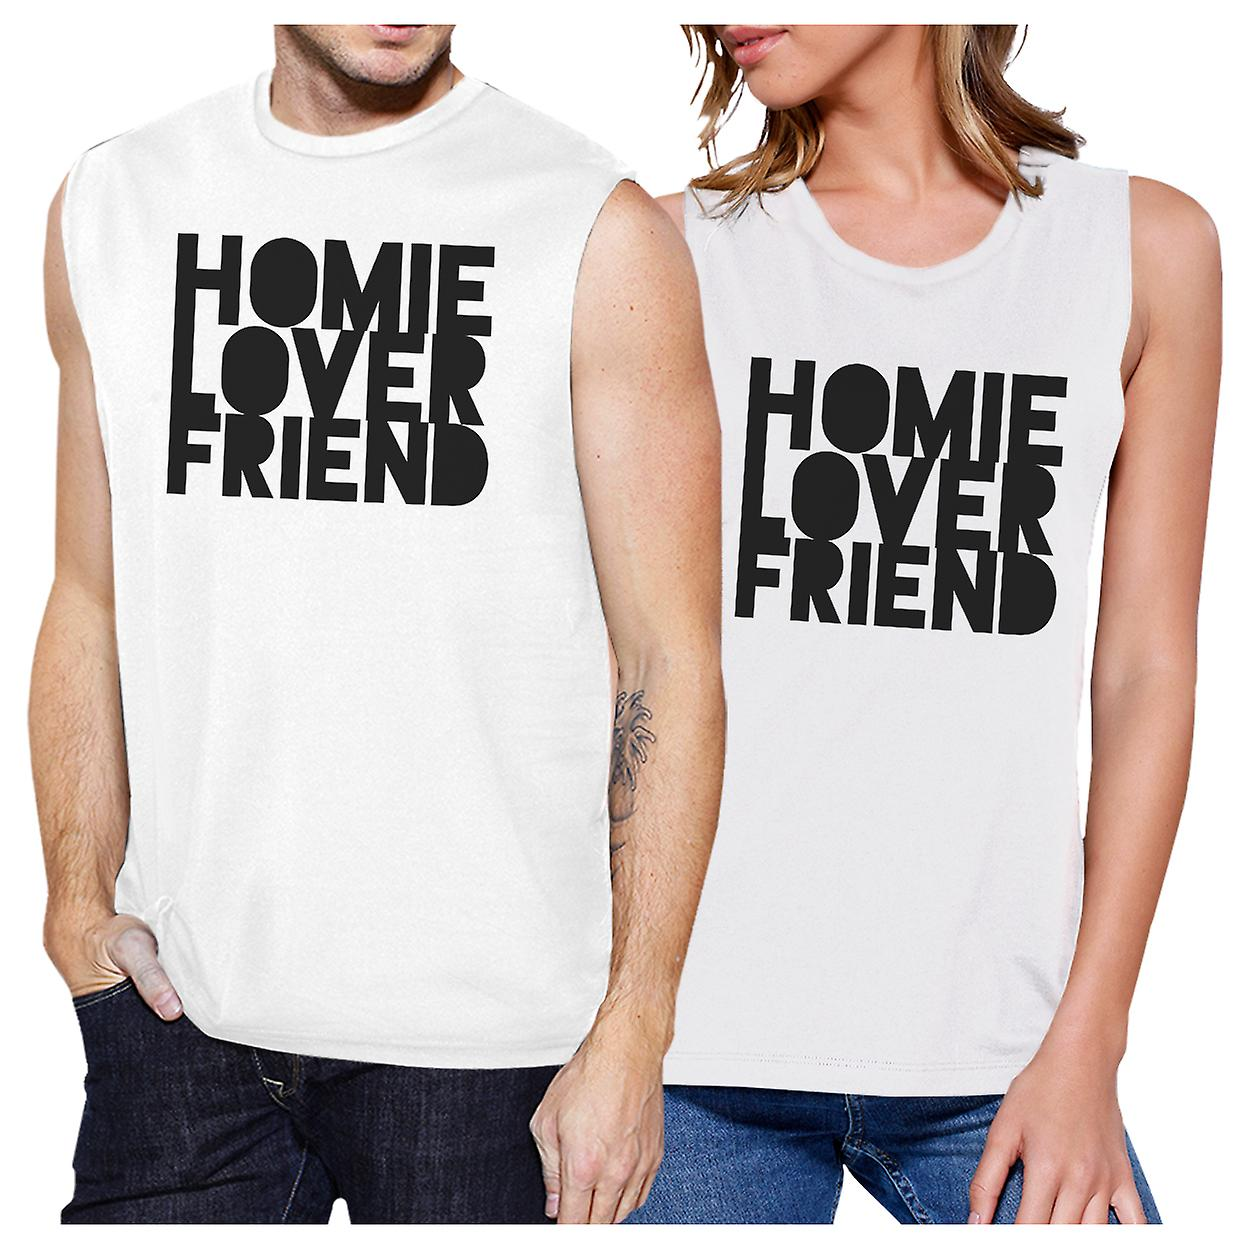 3c58ed9176 Homie Lover Friend Couples Matching Muscle Tank Tops White Cotton ...